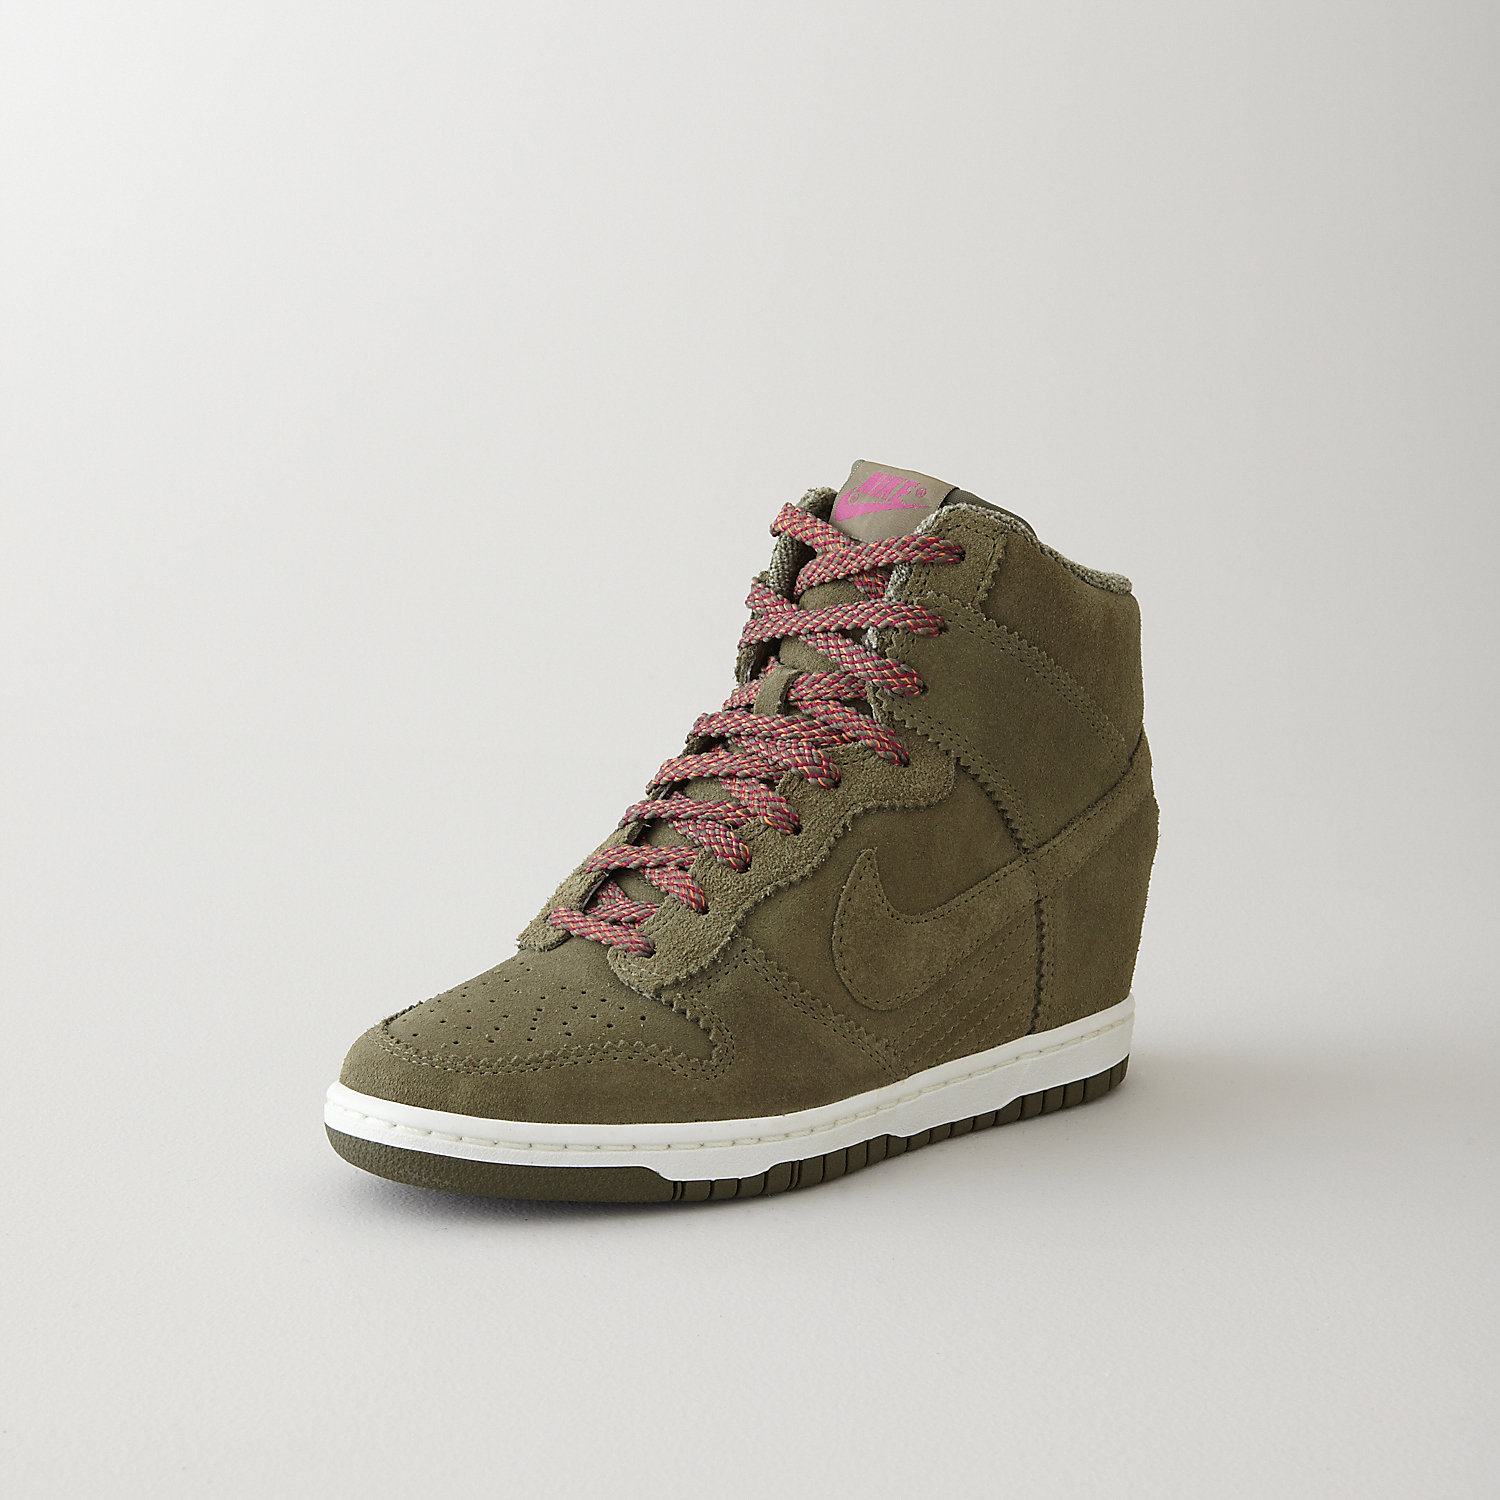 WOMENS DUNK SKY HI WEDGE